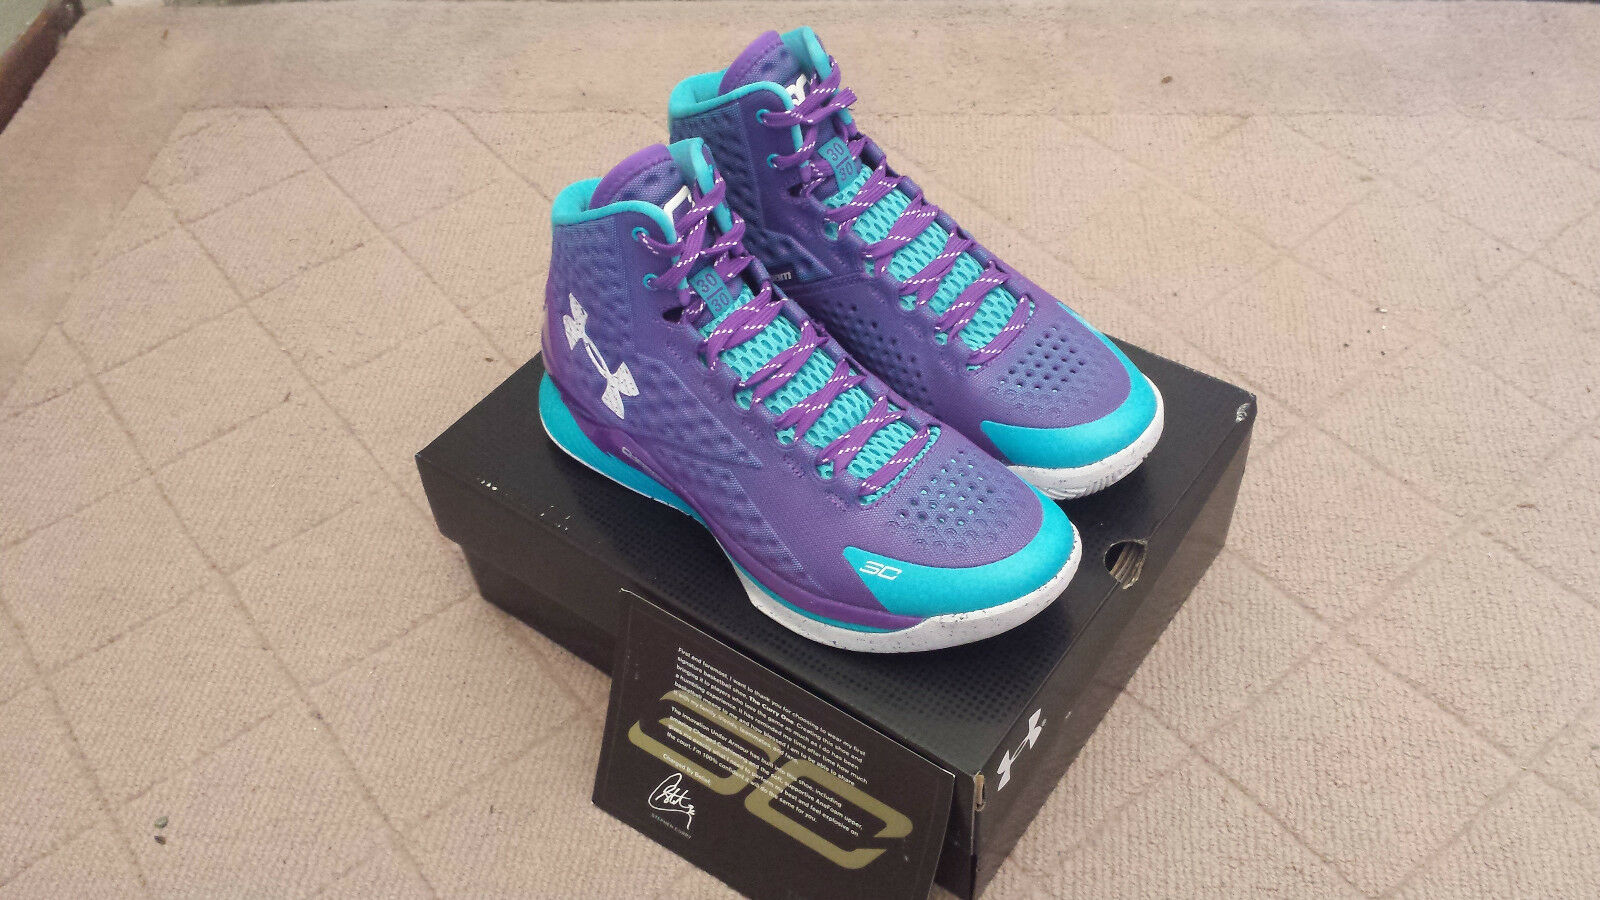 NEW! Steph Curry One Size US 12